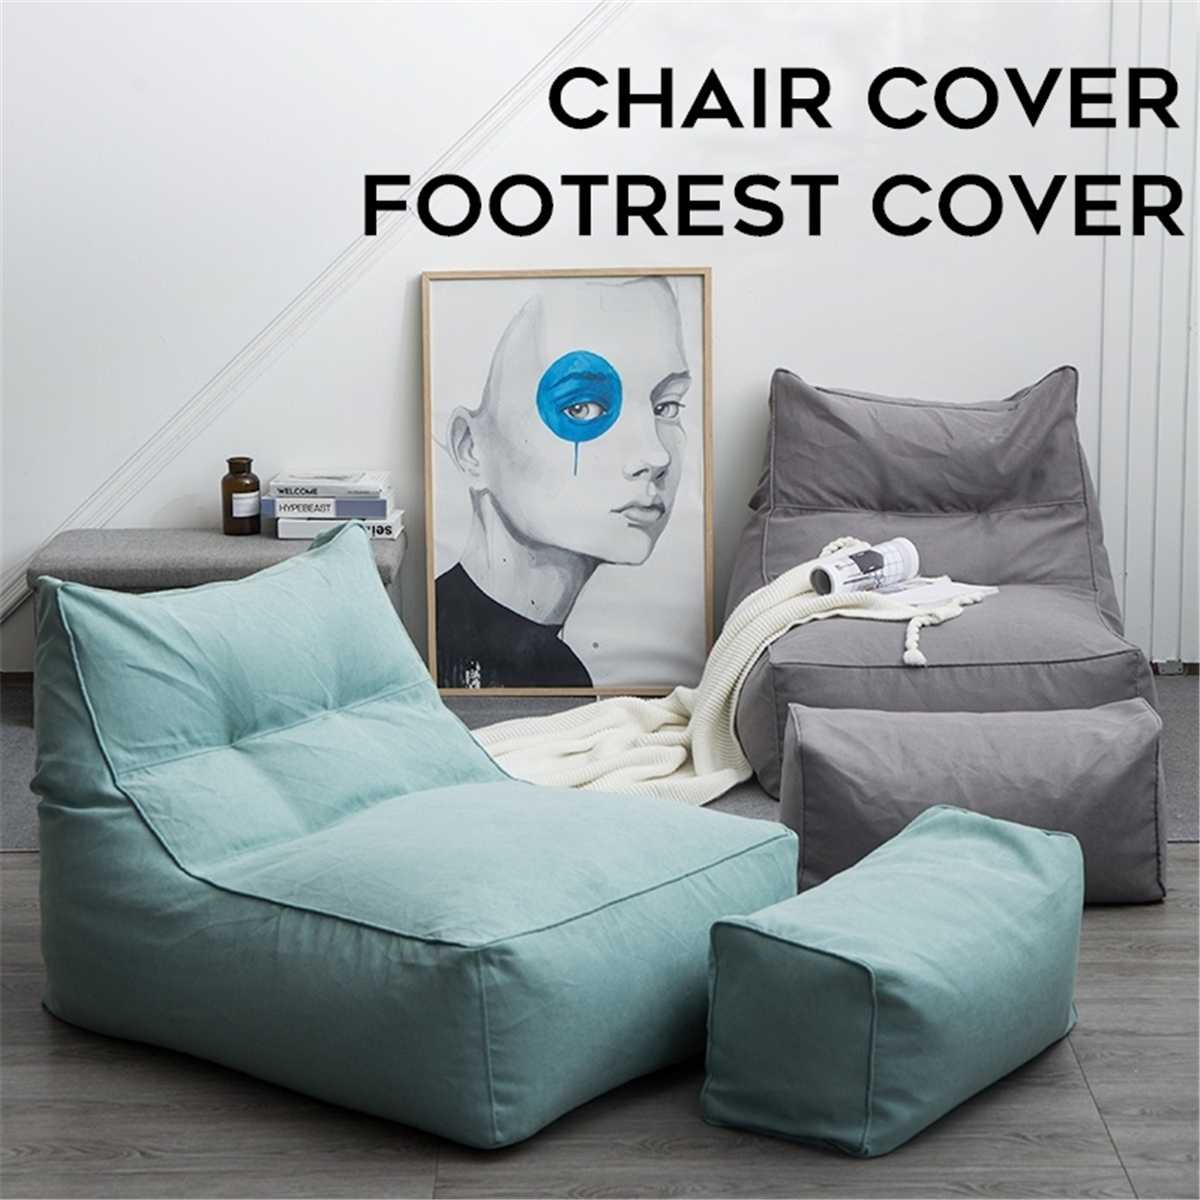 6 Colors Cotton Linen Square Solid Color Single Lazy Bean Bag Chair Footrest Sofa Set Cover Only Cover Home Textile